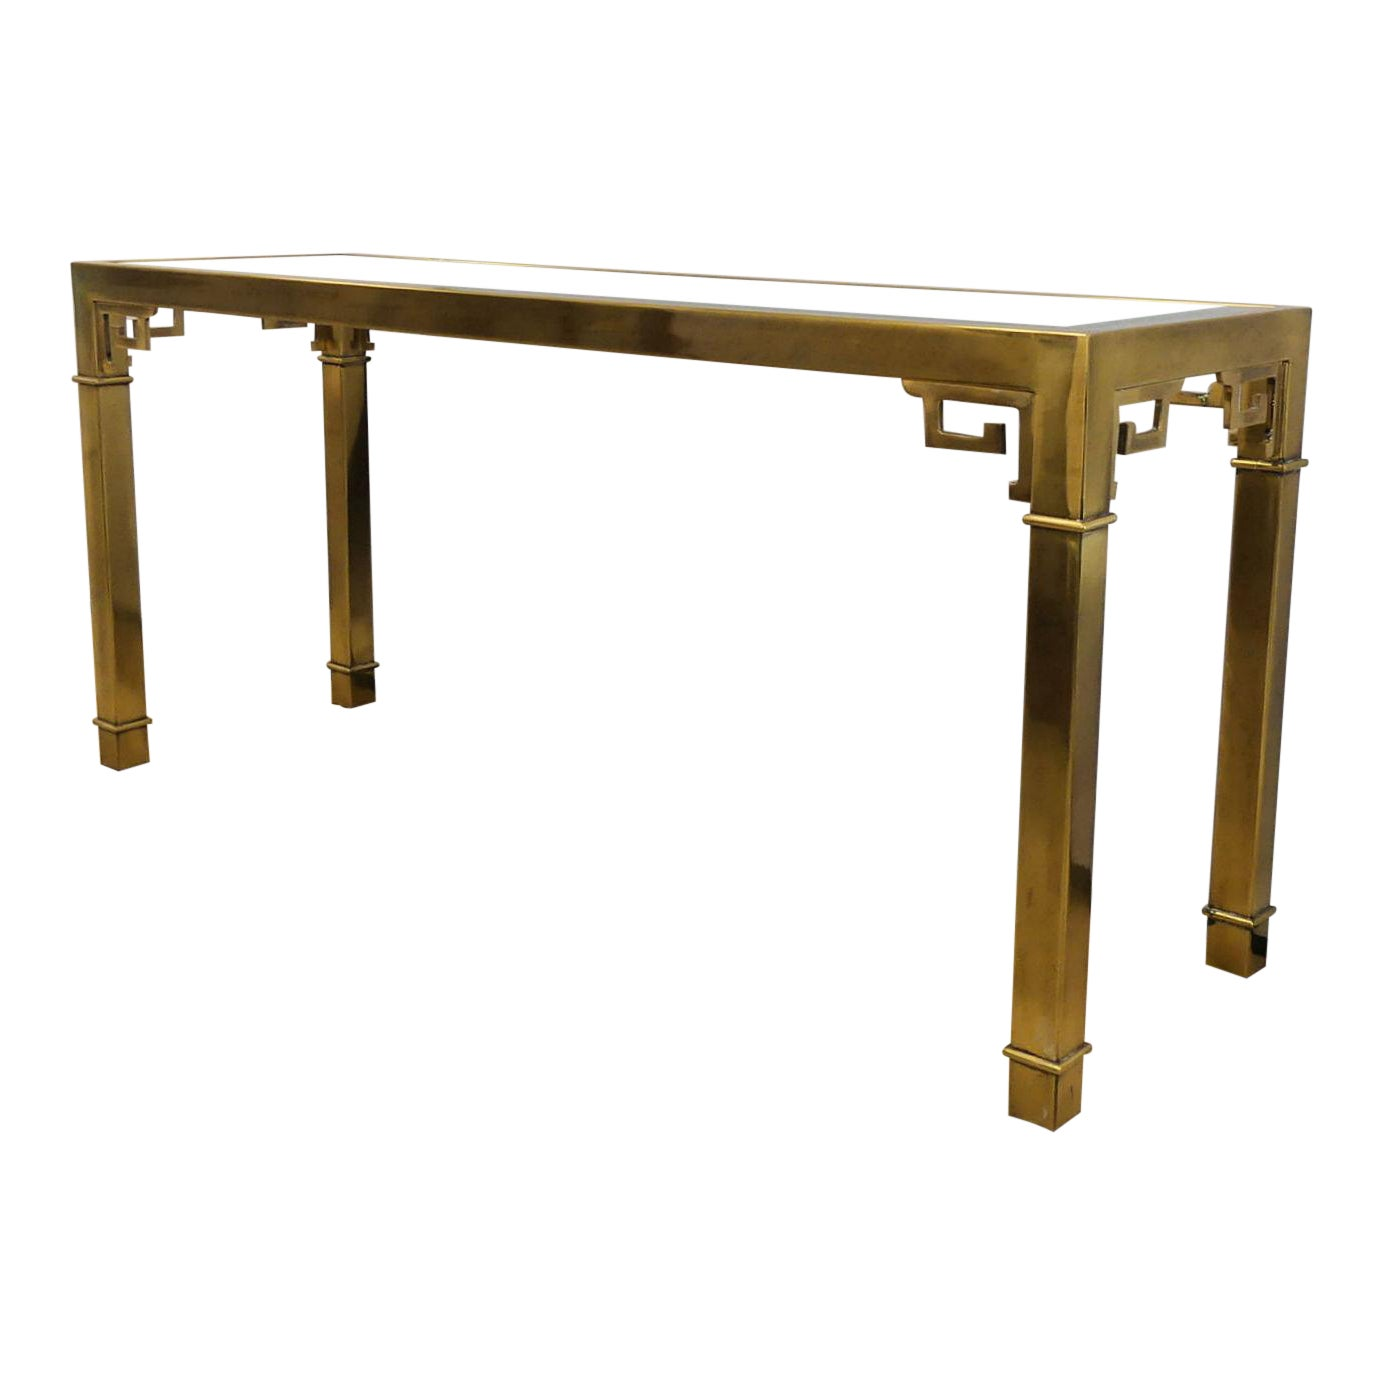 SOLD Mastercraft Asian Modern Console Table